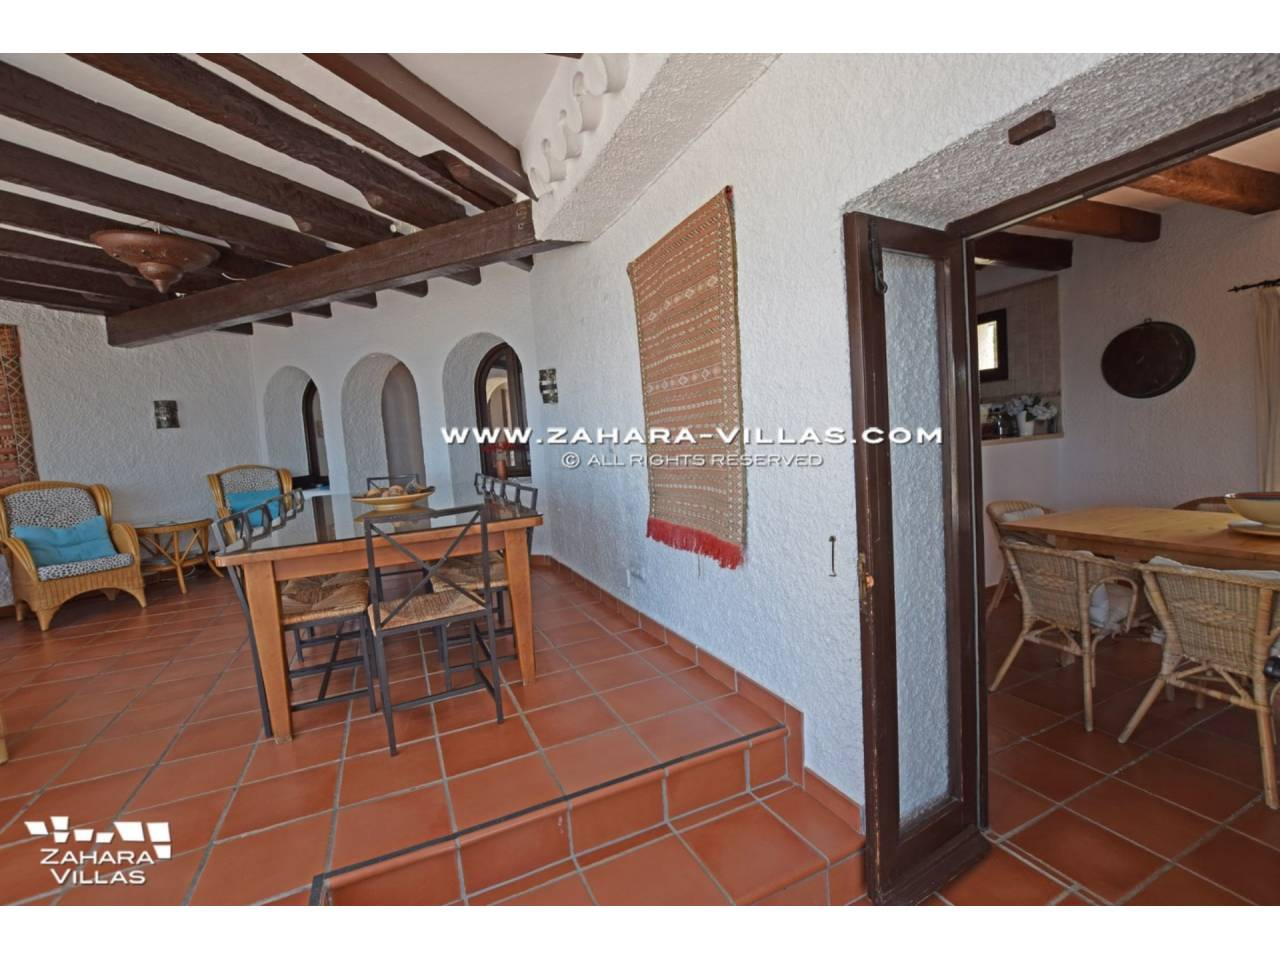 Imagen 35 de Wonderful Villa for sale in Atlanterra-Zahara de los Atunes